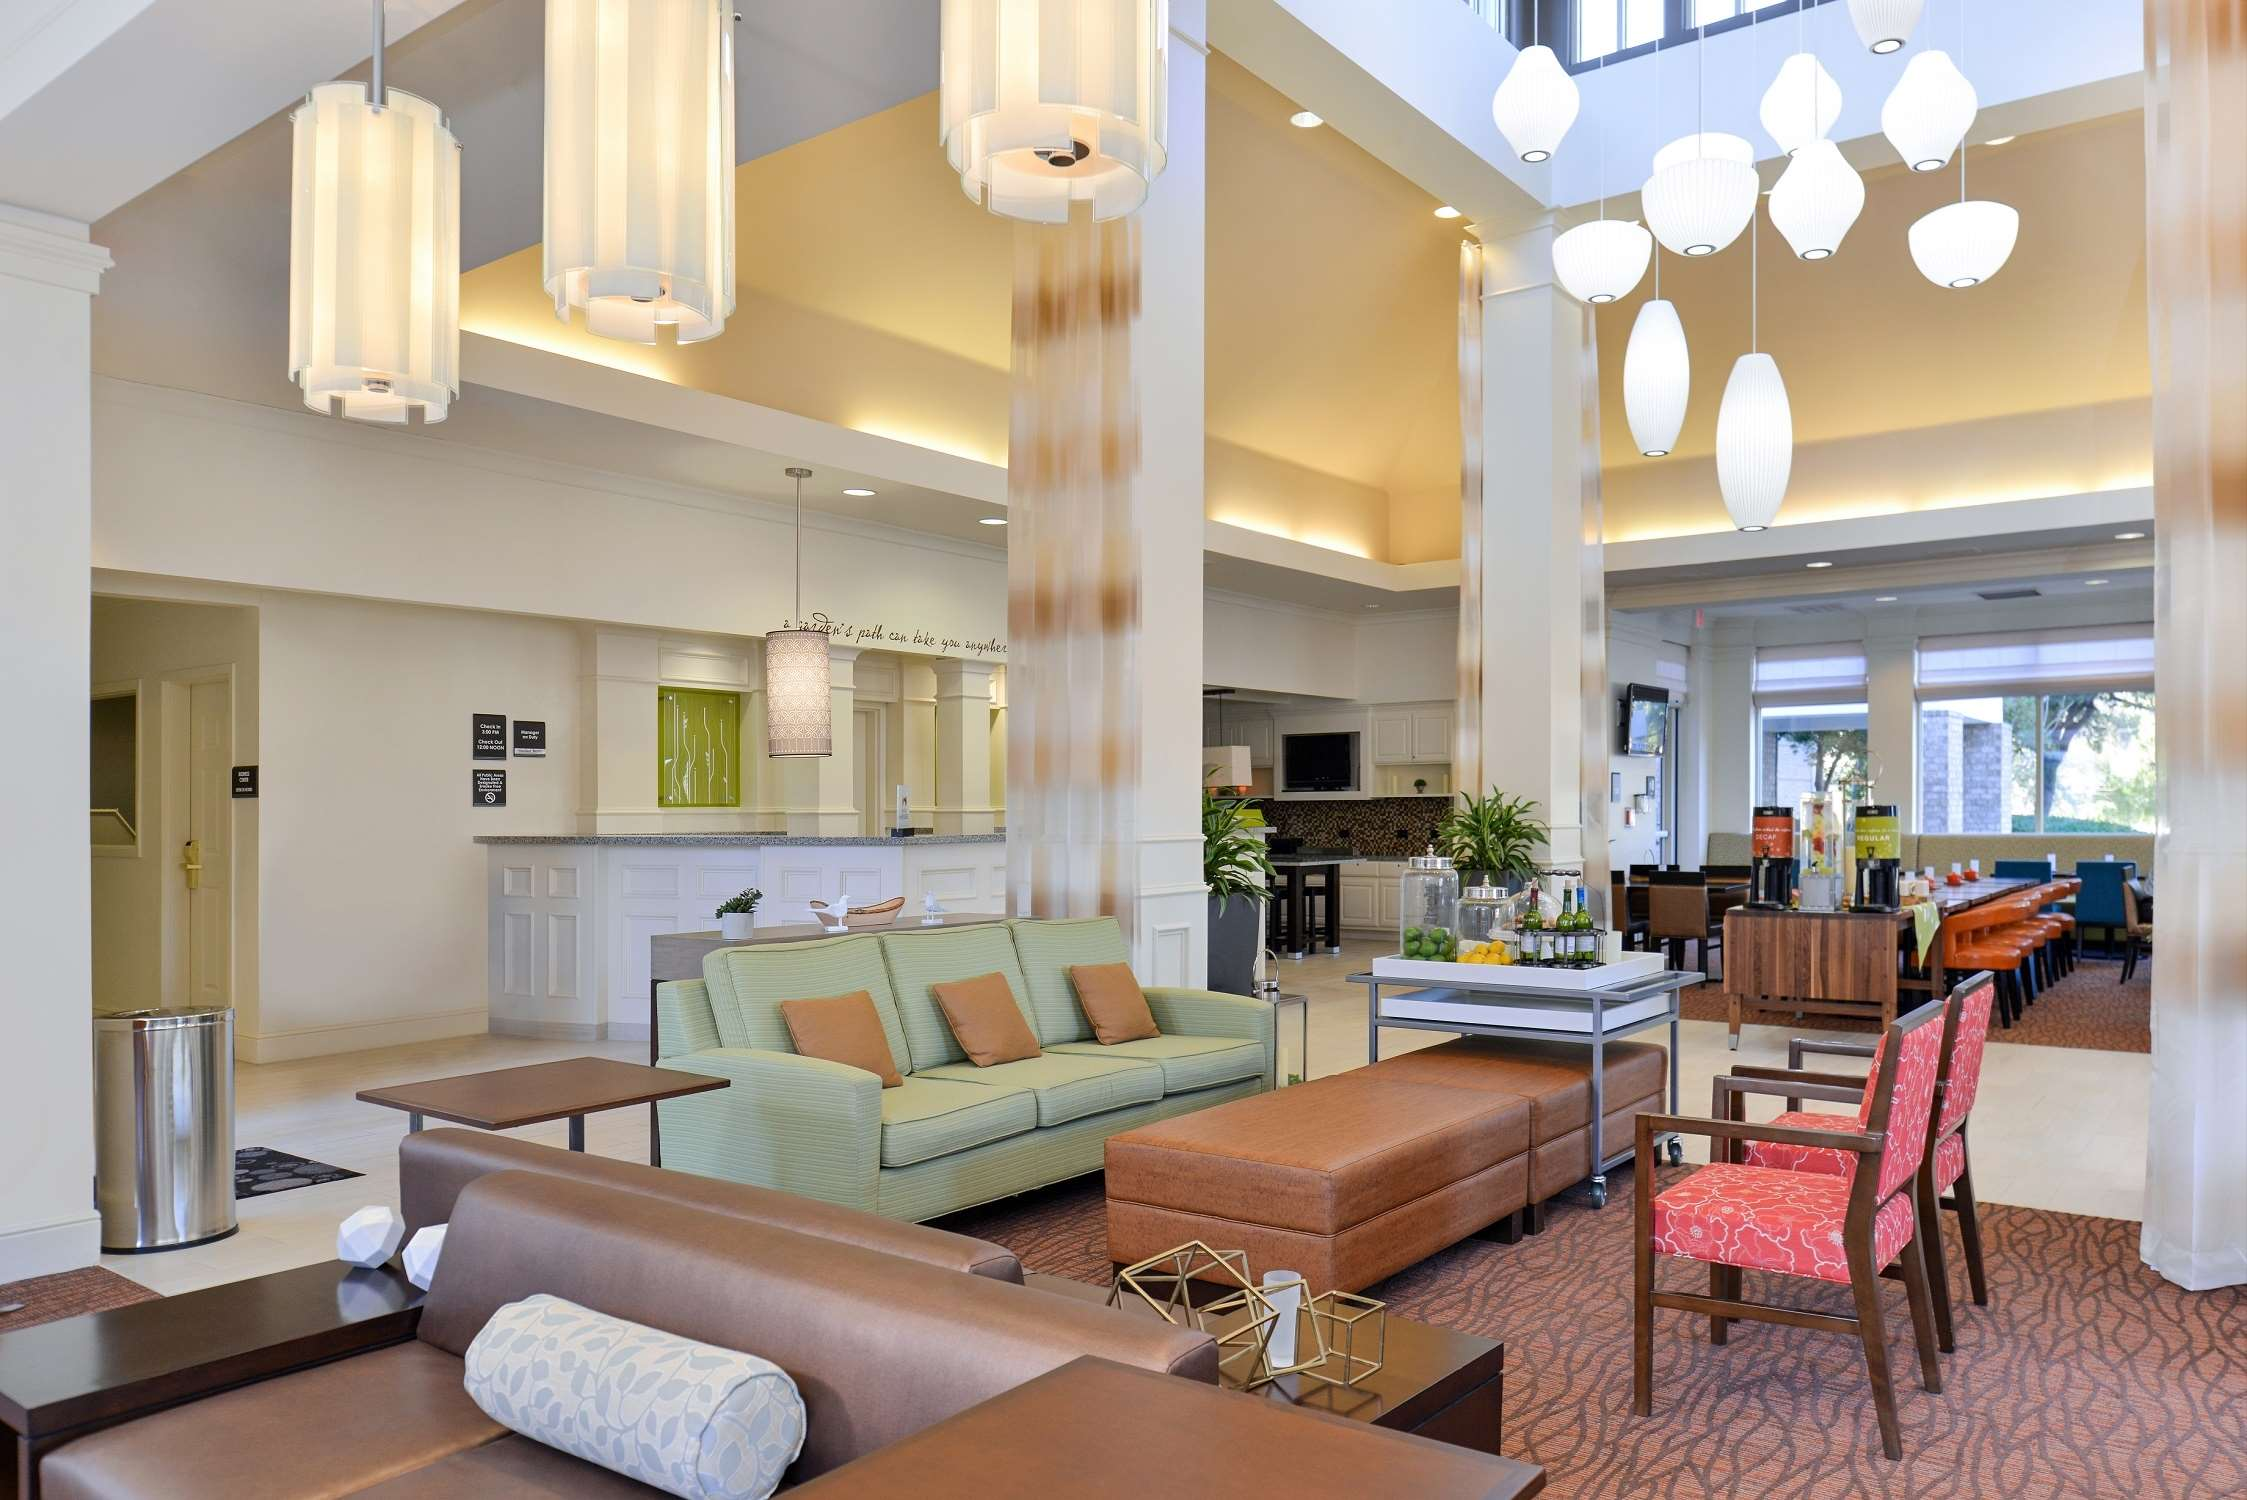 Hilton Garden Inn Dallas/Addison image 3